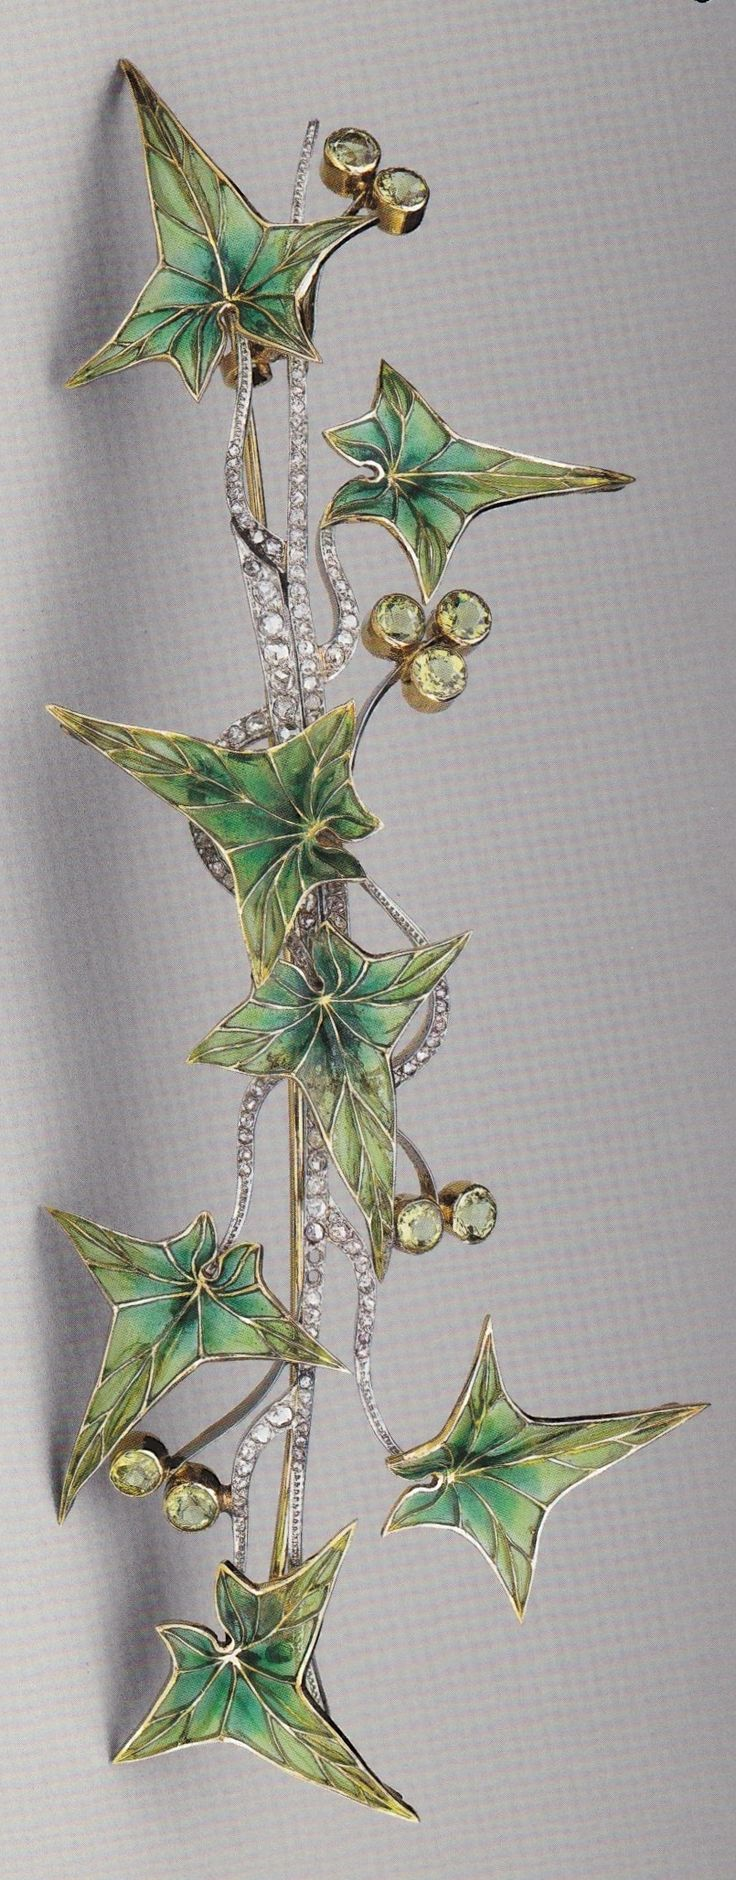 Platinum, gold, enamel, diamond and peridot 'Ivy' brooch, by an unknown maker, possibly Austrian, circa 1900. #ArtNouveau